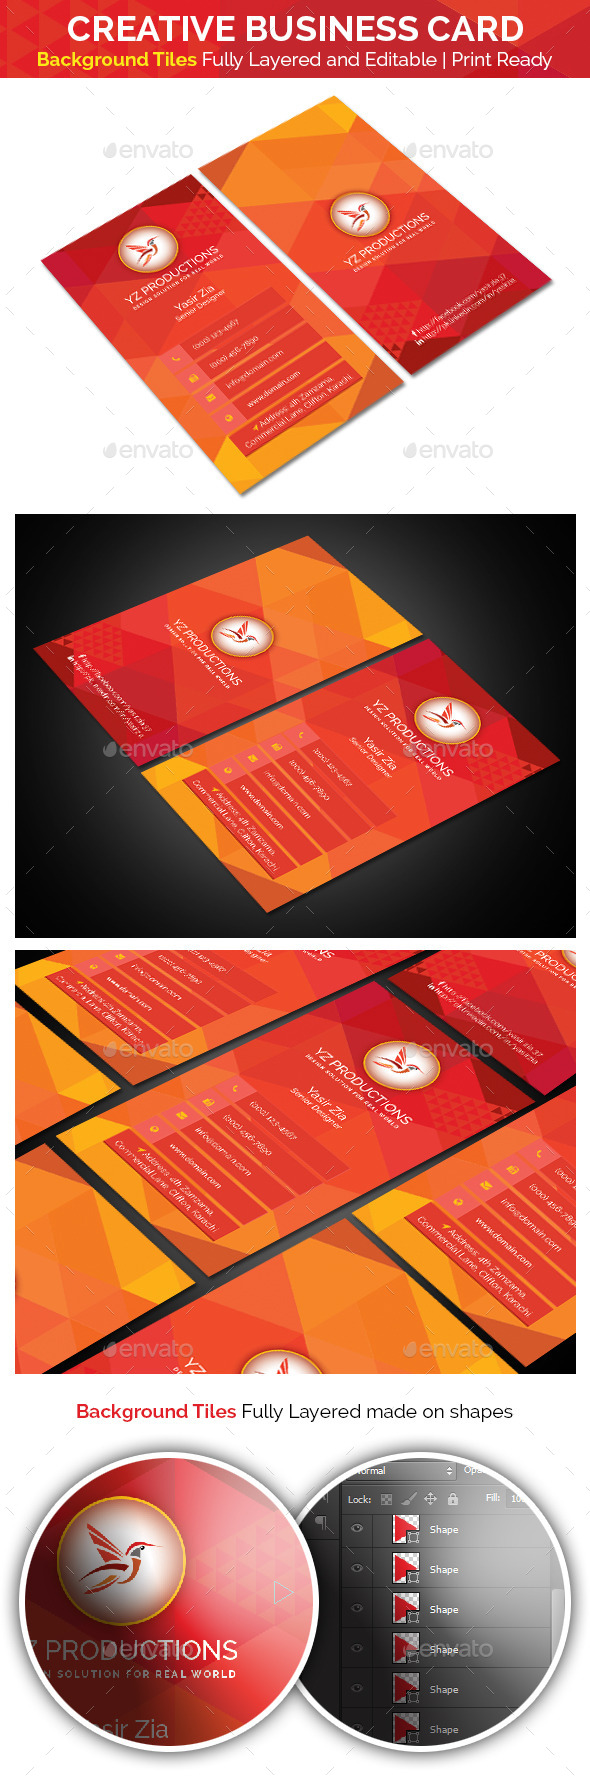 GraphicRiver Creative Business Card V-2.0 9091041